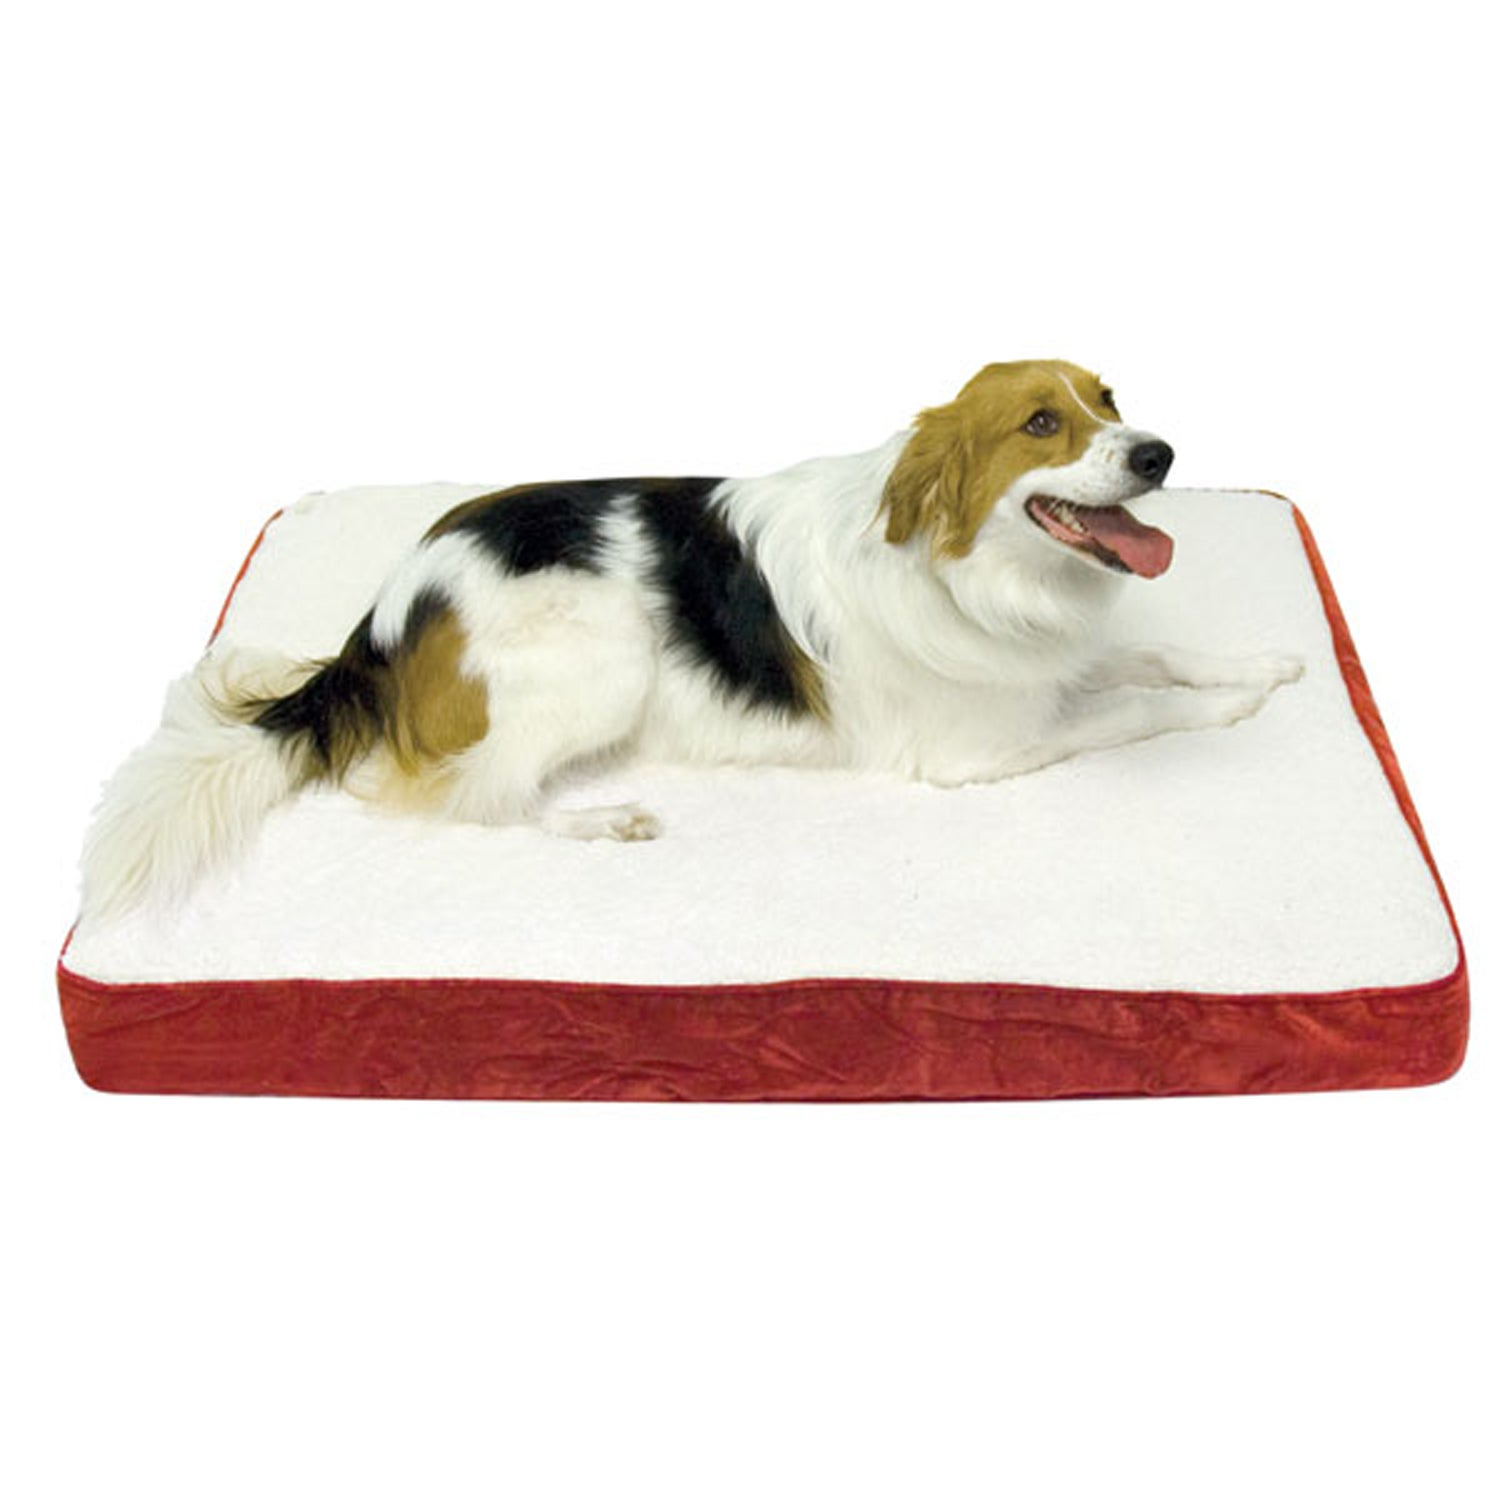 Ozzie Medium Deep Red Orthopedic Dog Bed